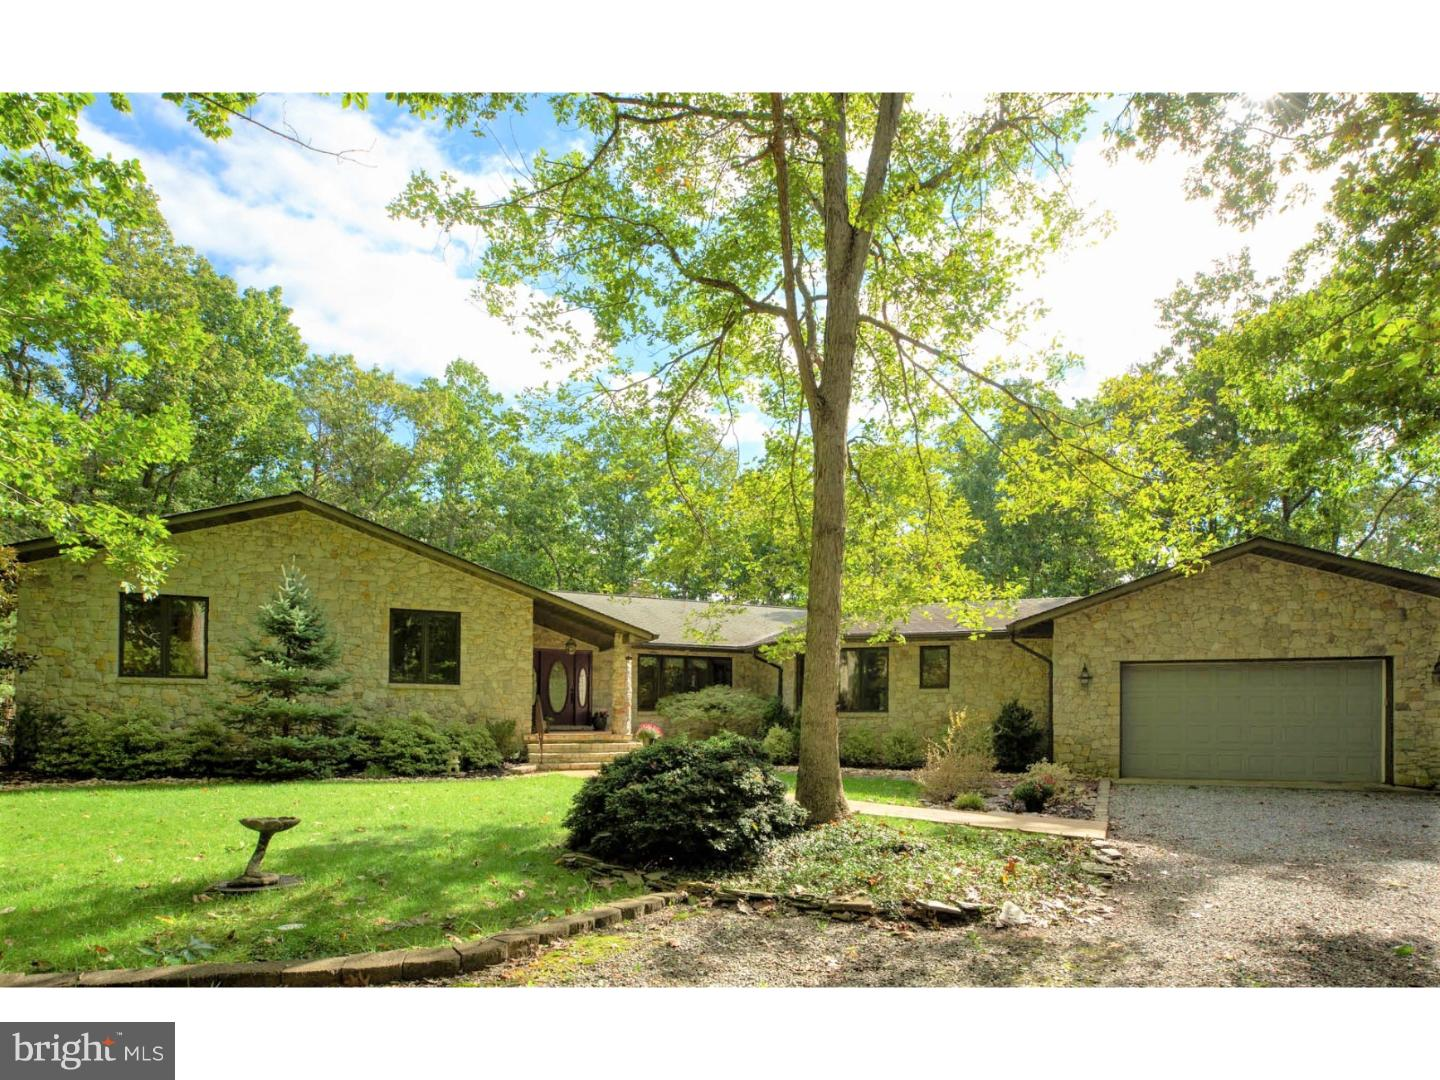 Single Family Home for Sale at 410 PRICKETTS MILL Road Tabernacle, New Jersey 08088 United States